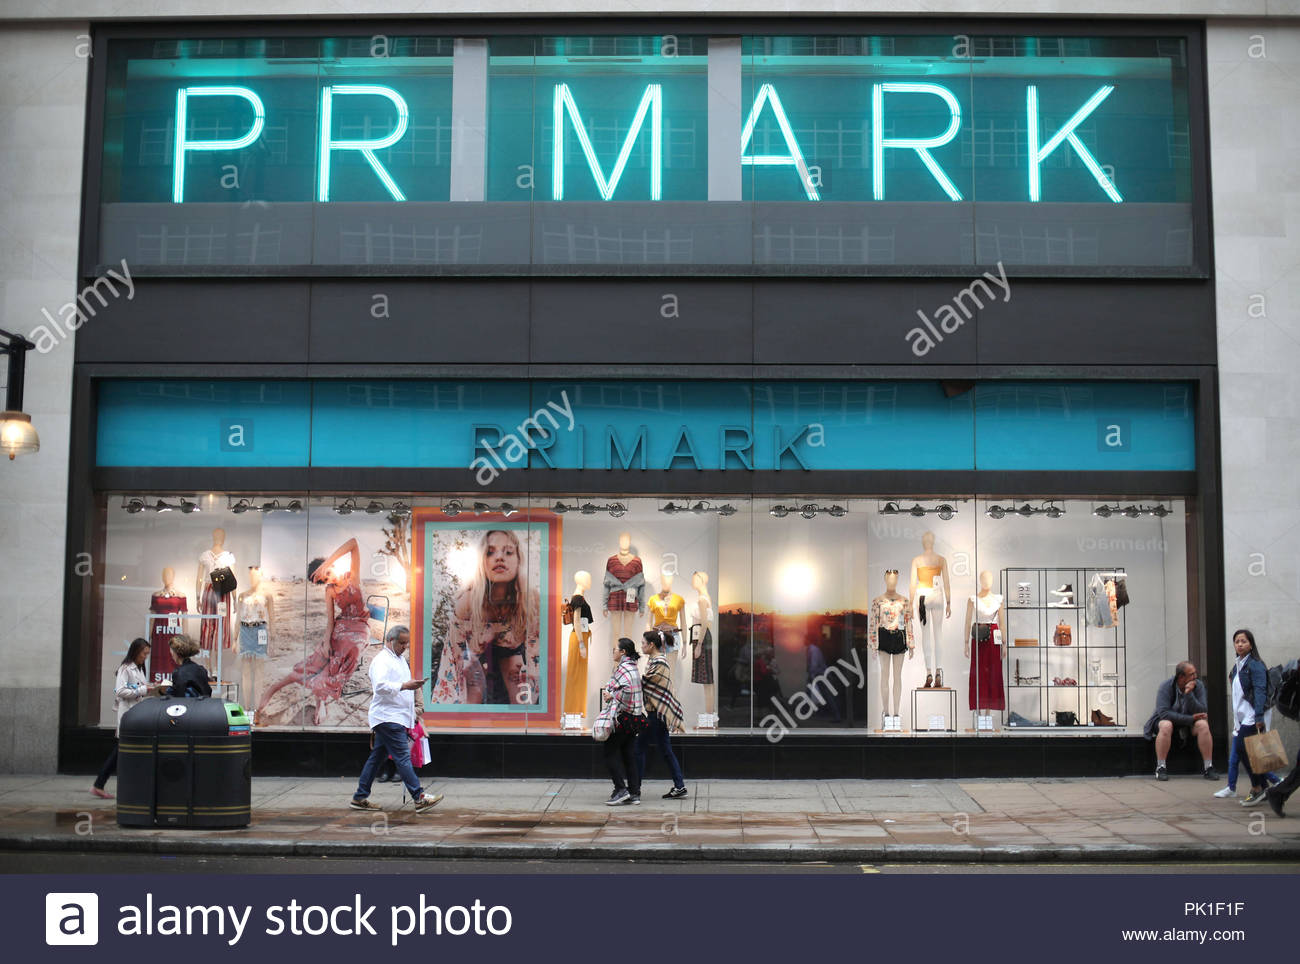 File photo dated 29/5/2018 of a branch of Primark on Oxford Street, central London. The retailer's owner Associated British Foods (AB Foods) has warned it will take a £20 million hit due to the stronger pound. - Stock Image